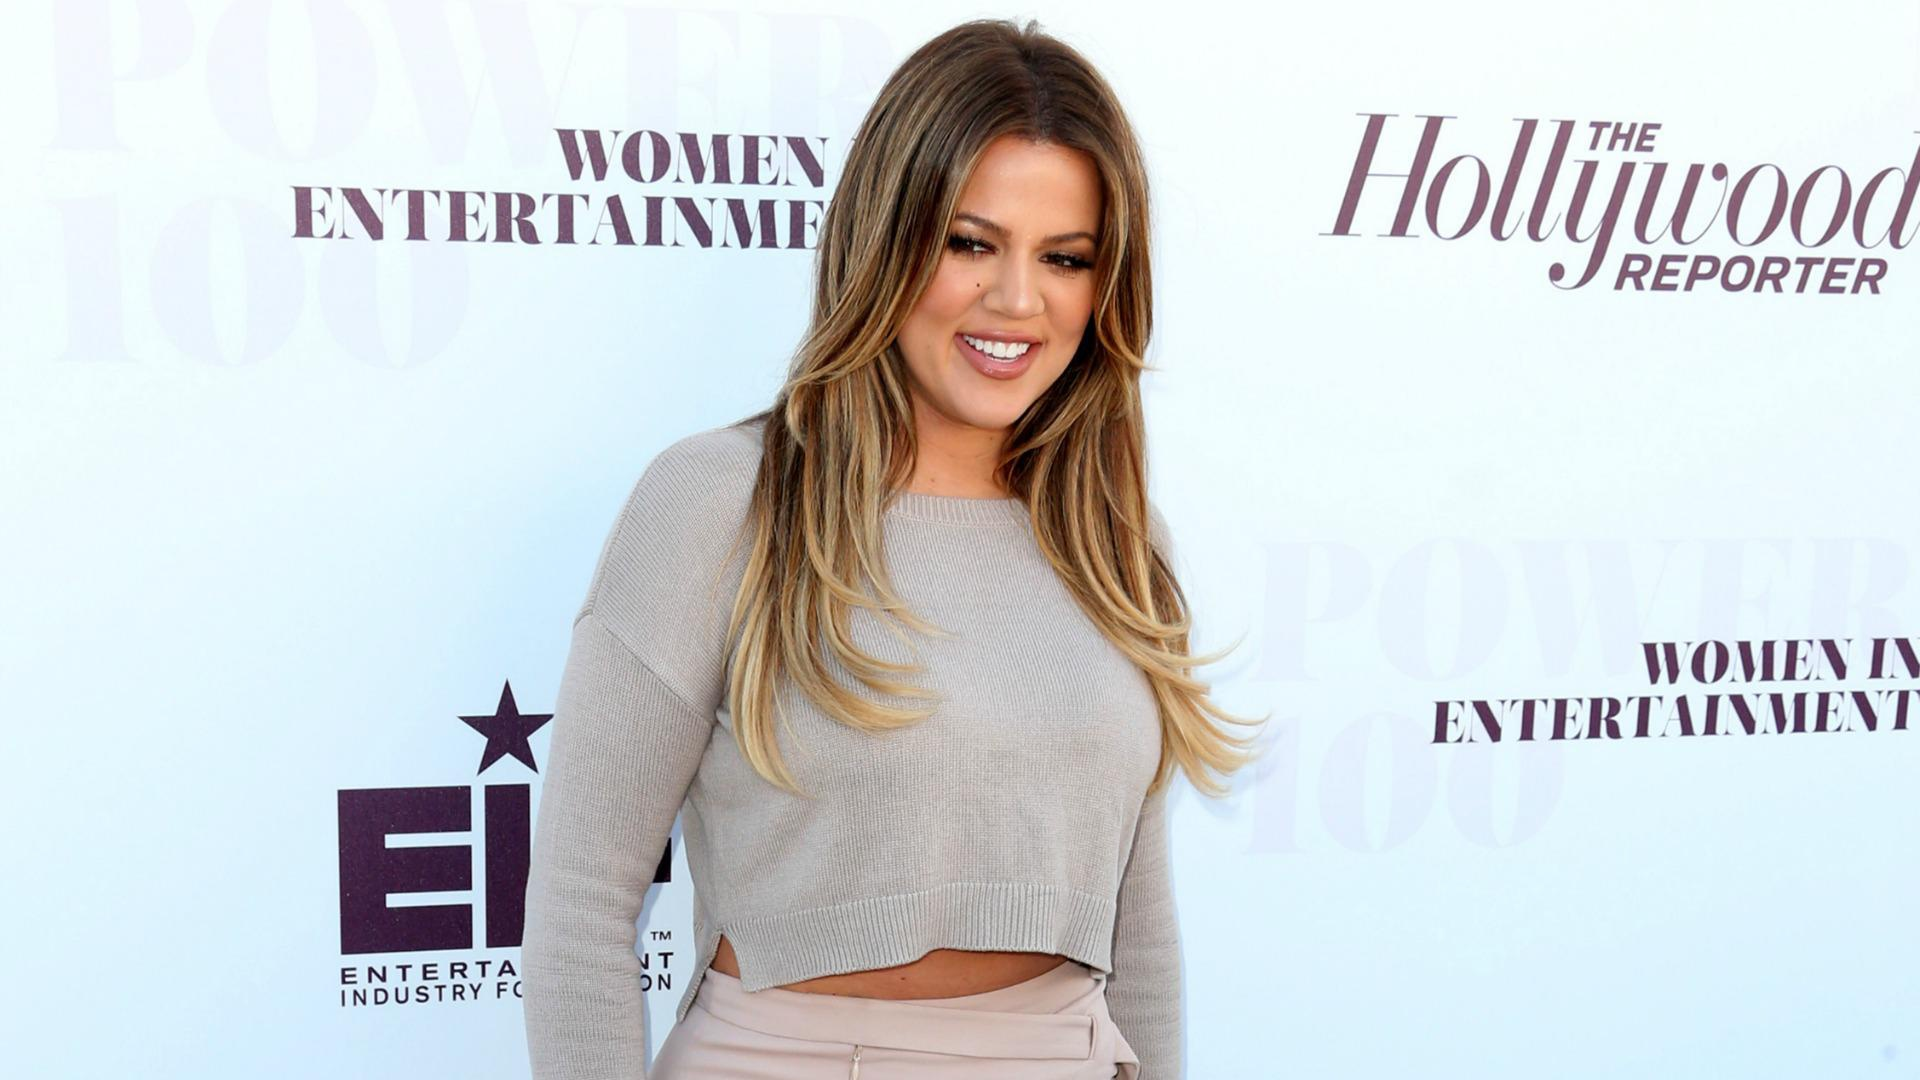 Khloé Kardashian mourns her marriage, but her divorce could be in doubt